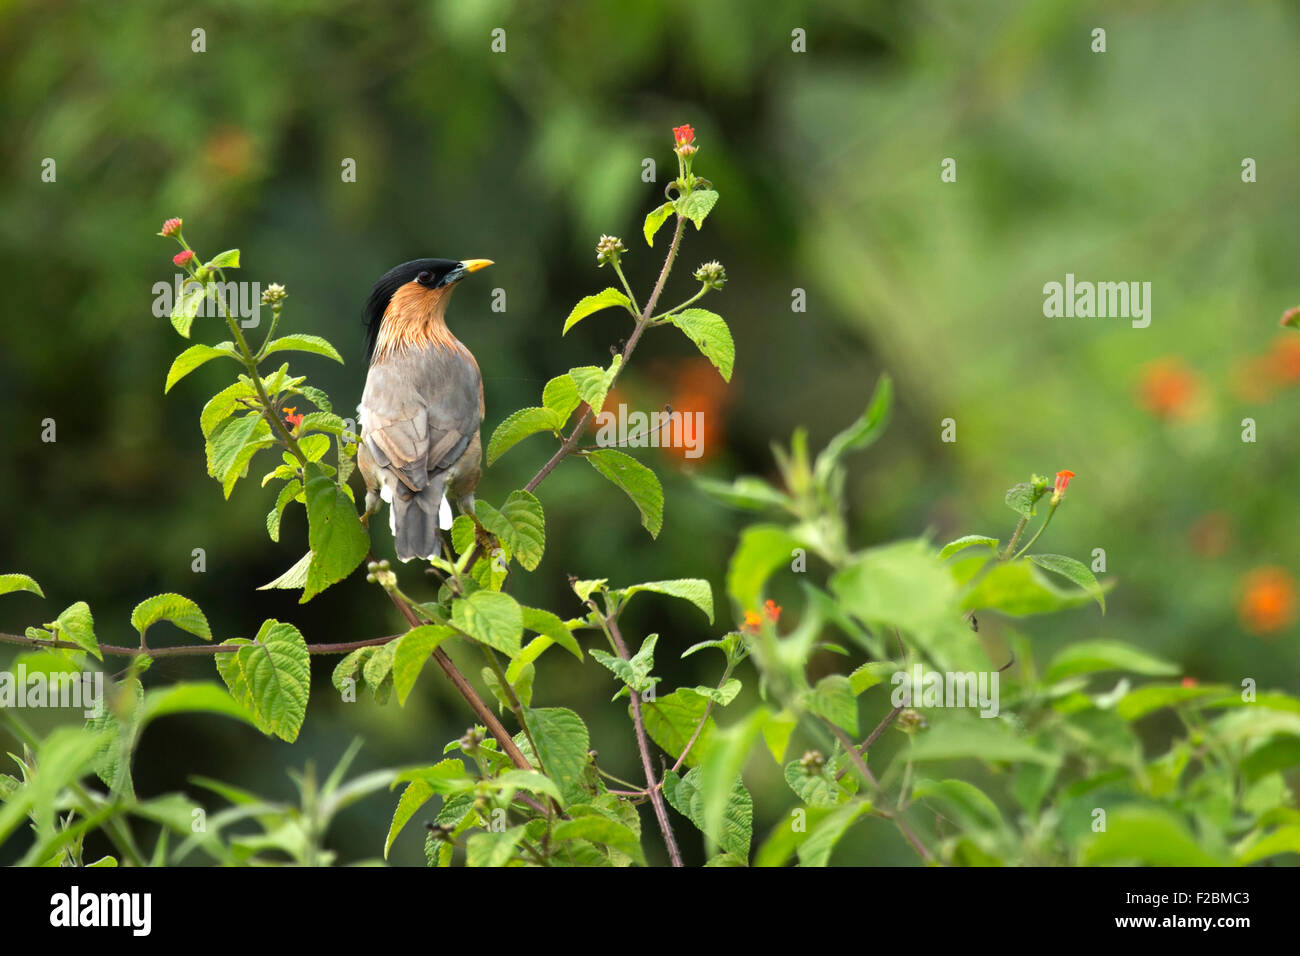 The brahminy myna or brahminy starling (Sturnia pagodarum) is a member of the starling family of birds. It is usually - Stock Image